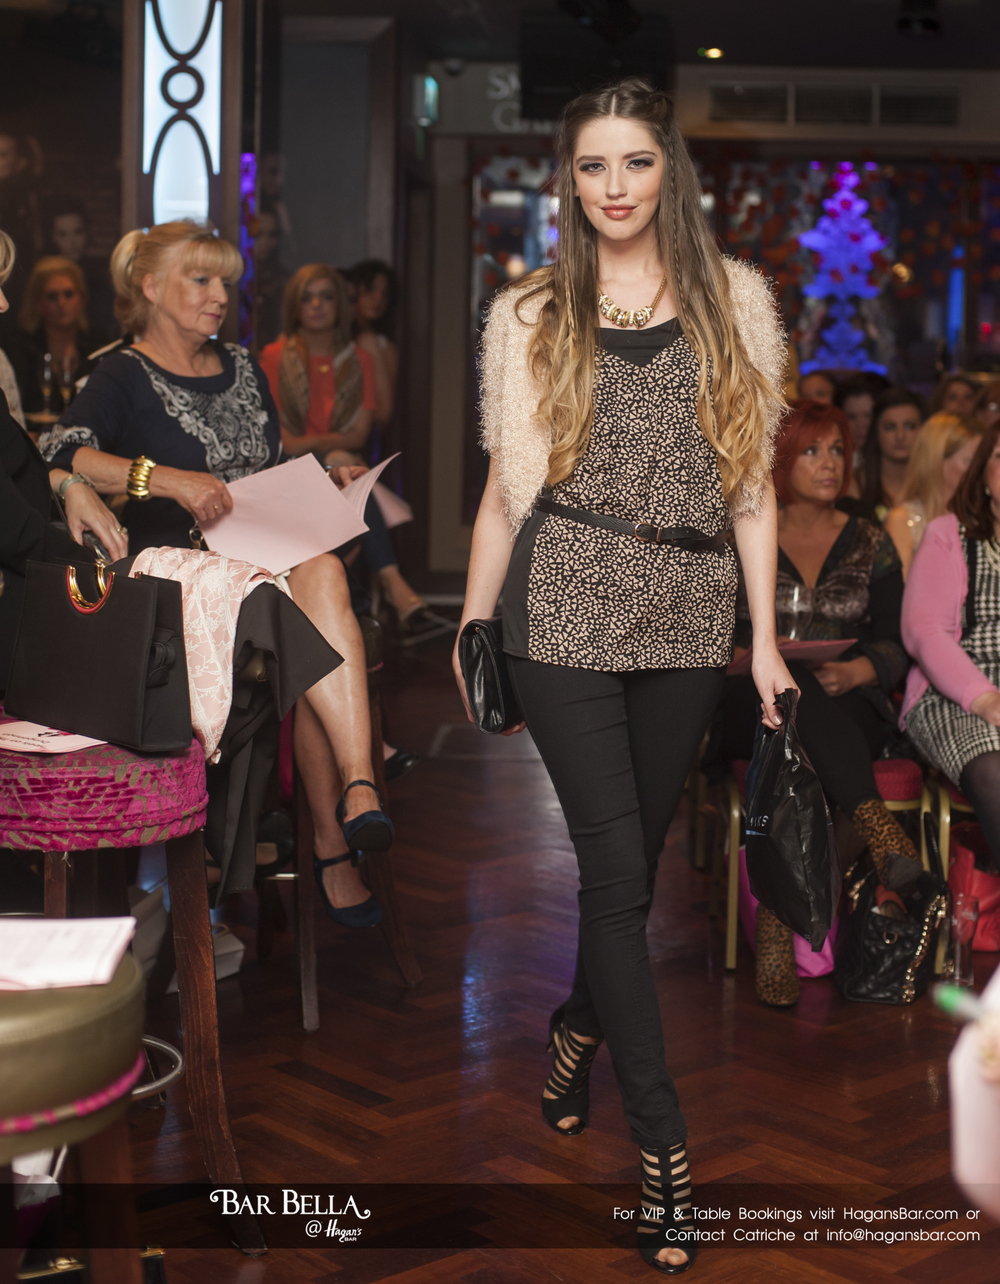 20140925-20140925-Heels on The Hill 2014-5756.jpg